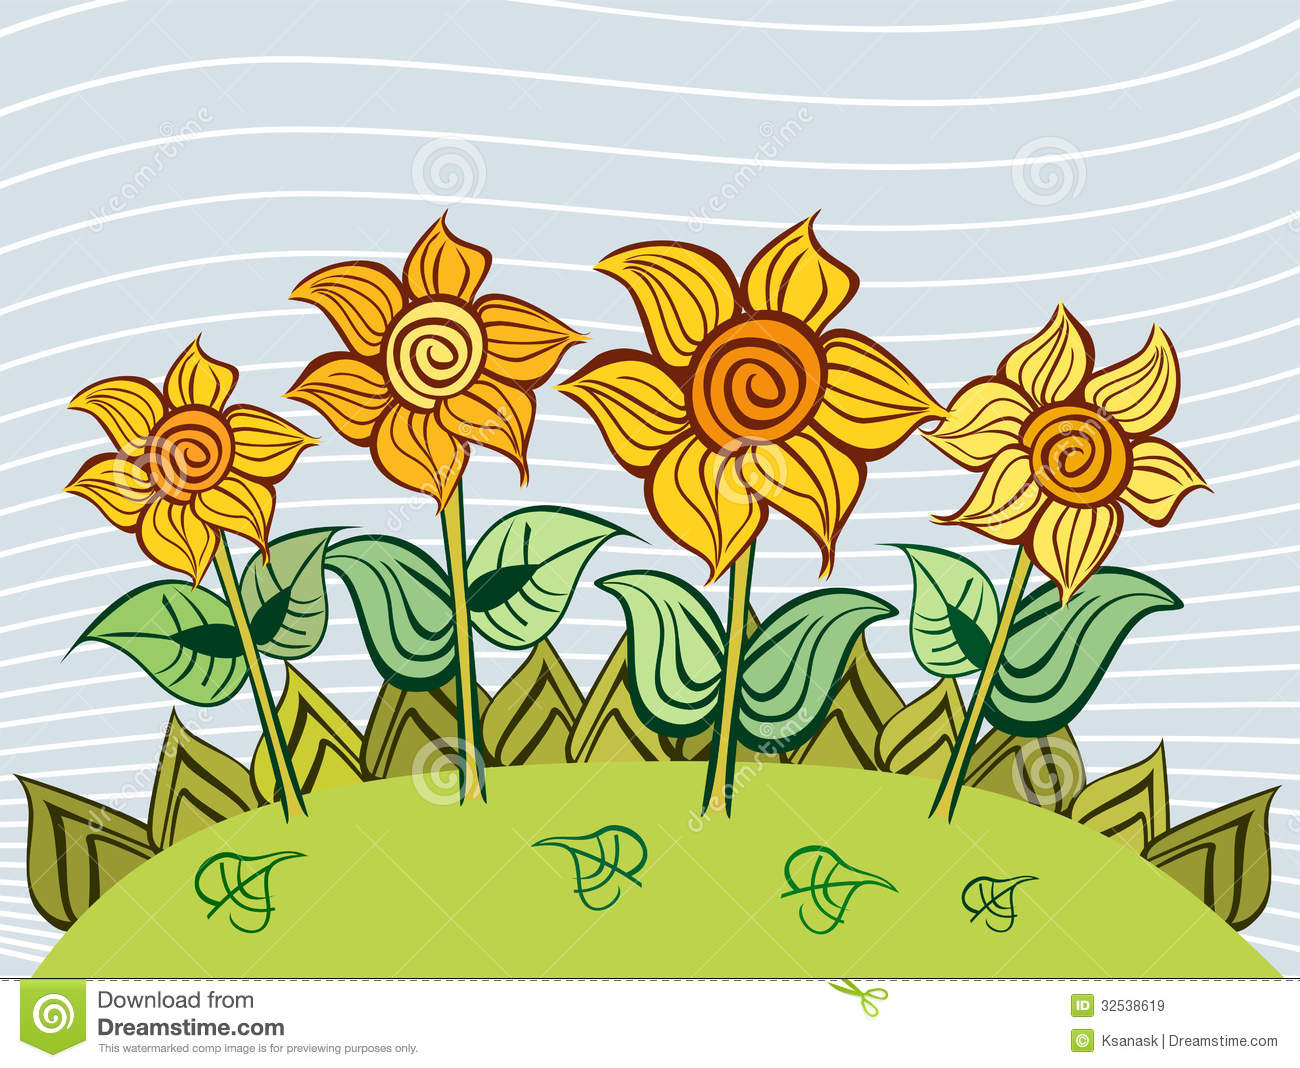 Galleries Related: Sunflower Clipart , Happy Sunflower Clipart ,